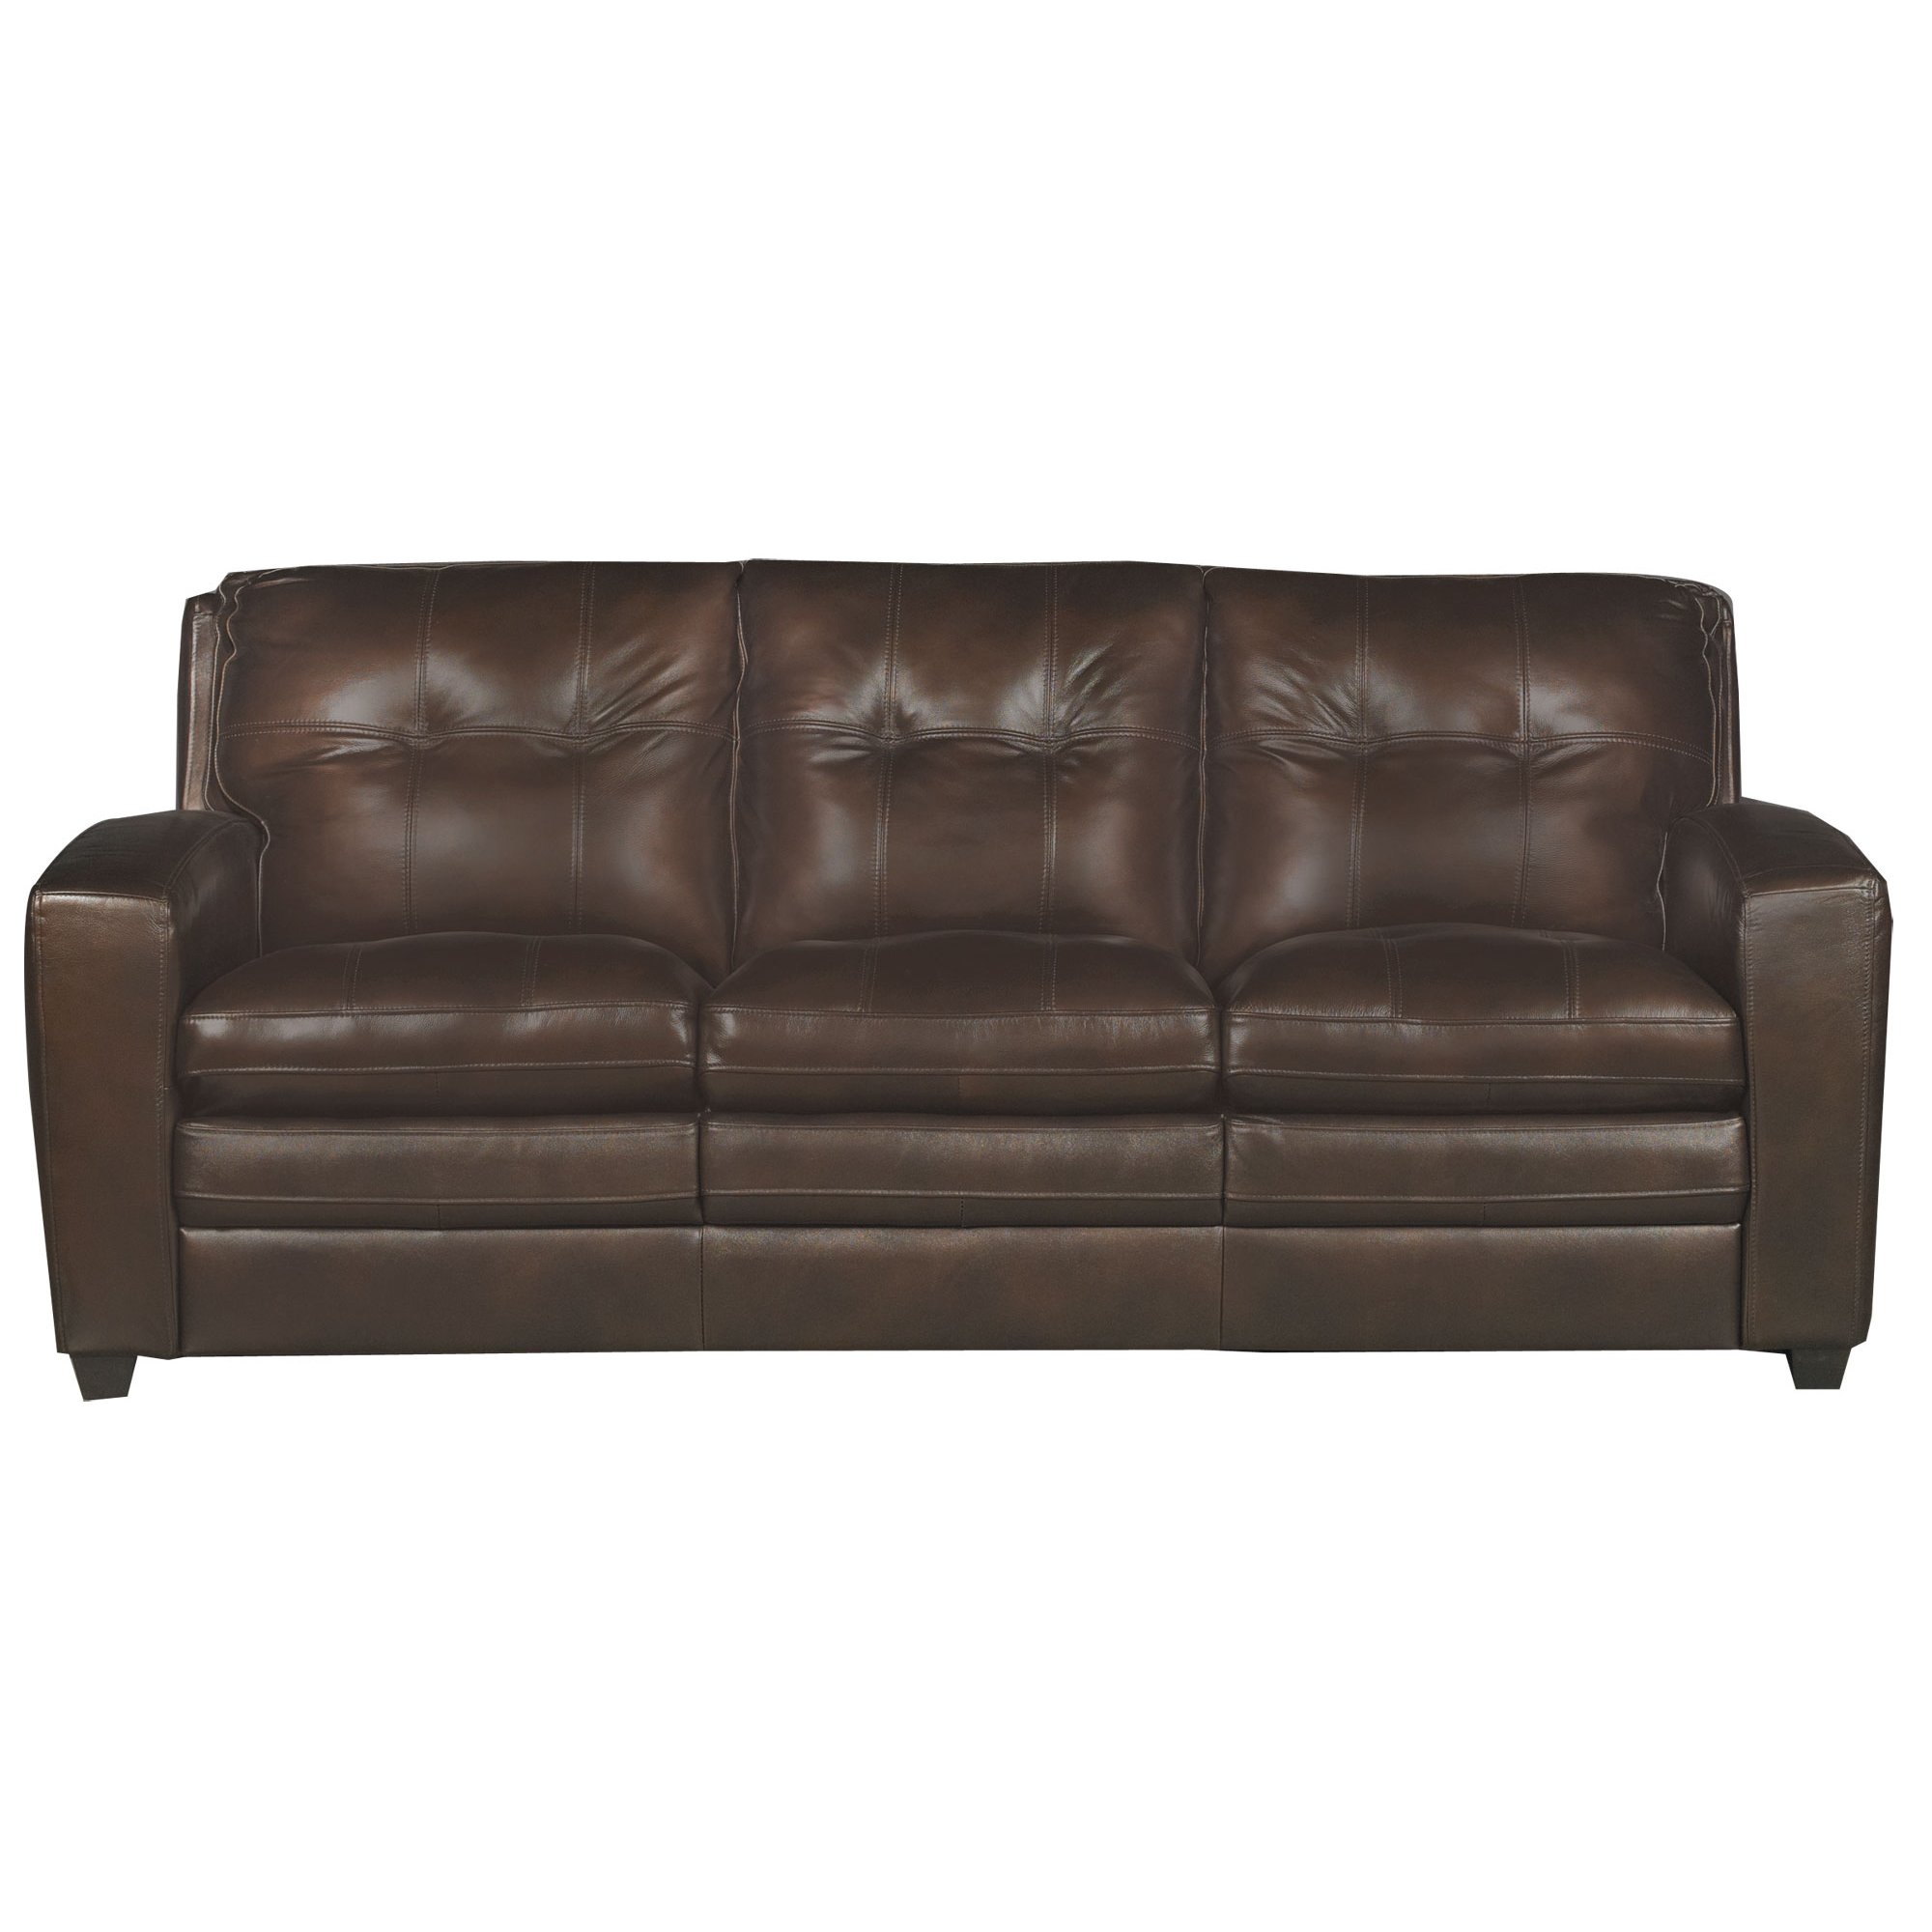 Modern Contemporary Mahogany Leather Sofa   Roland | RC Willey Furniture  Store